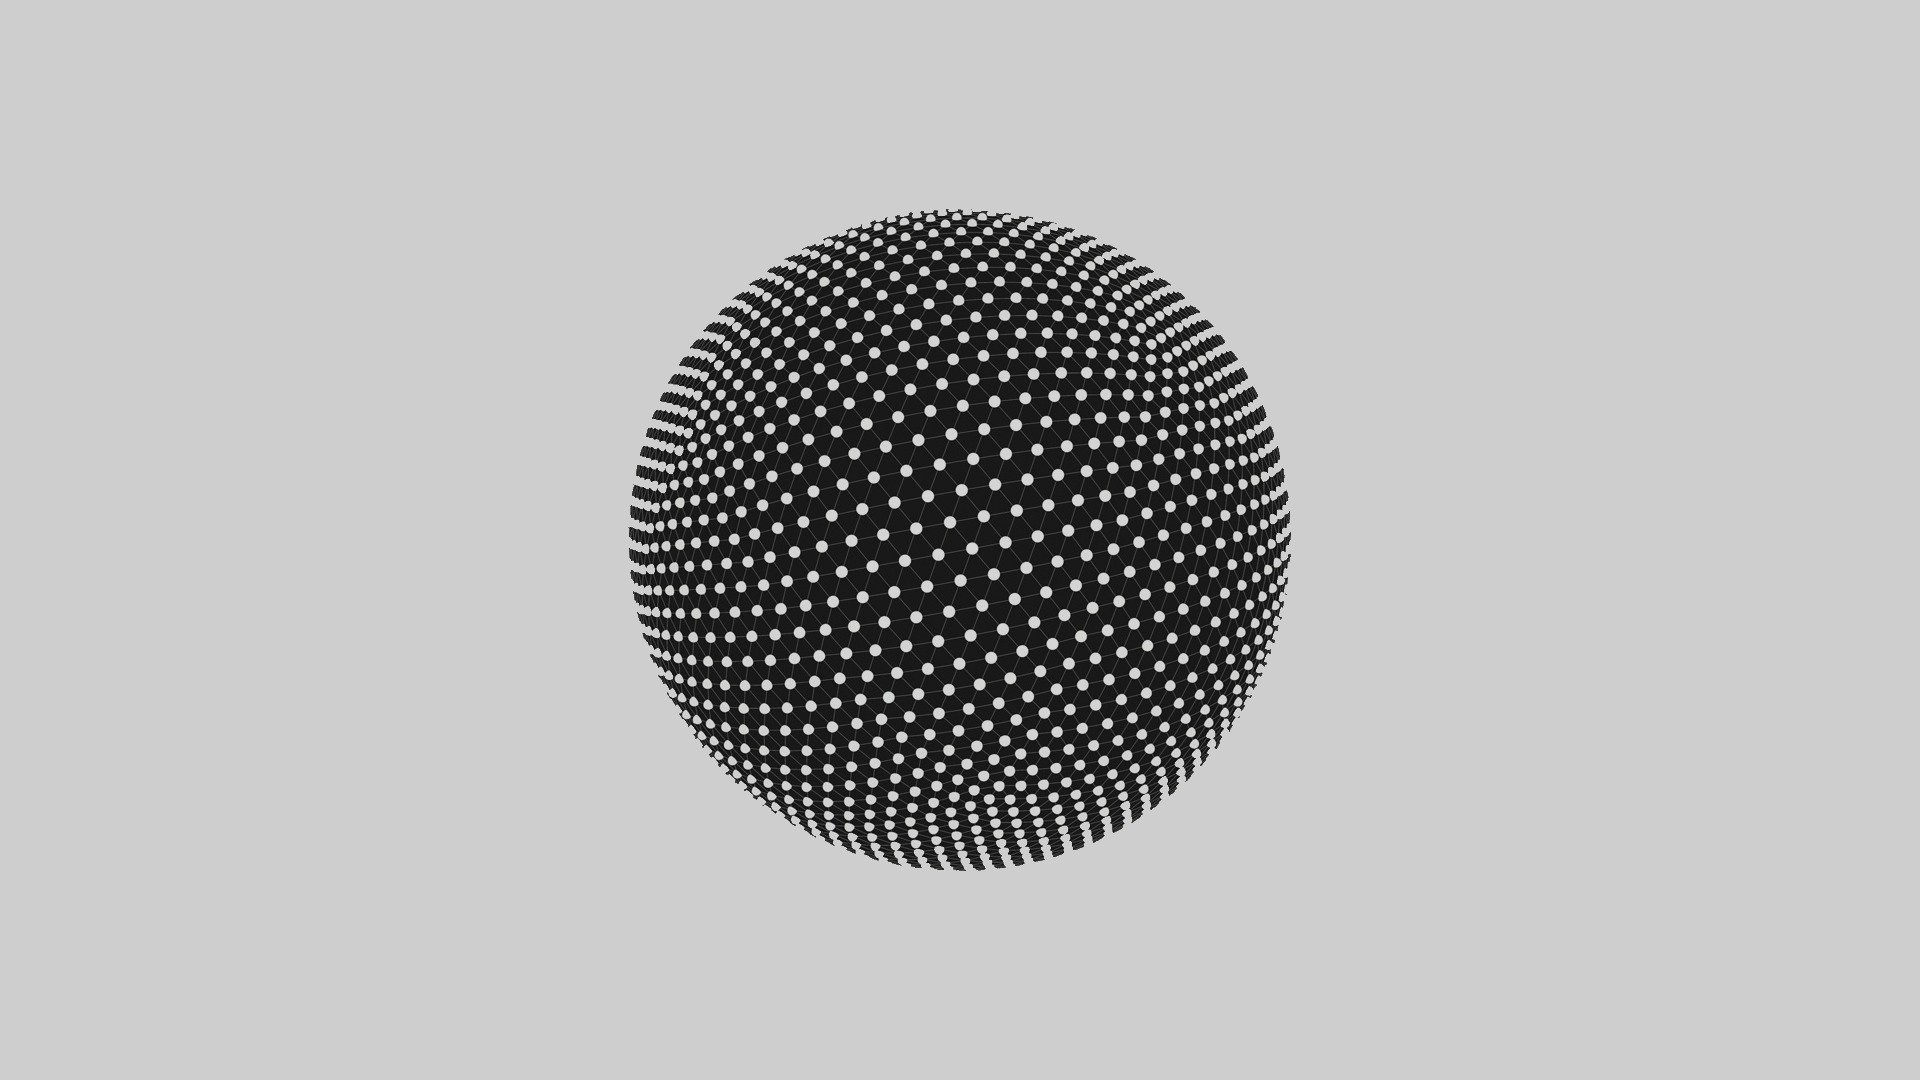 General 1920x1080 monochrome sphere digital art abstract grid 3D Abstract Sphere Grid vector CGI simple background white background Digital Grid